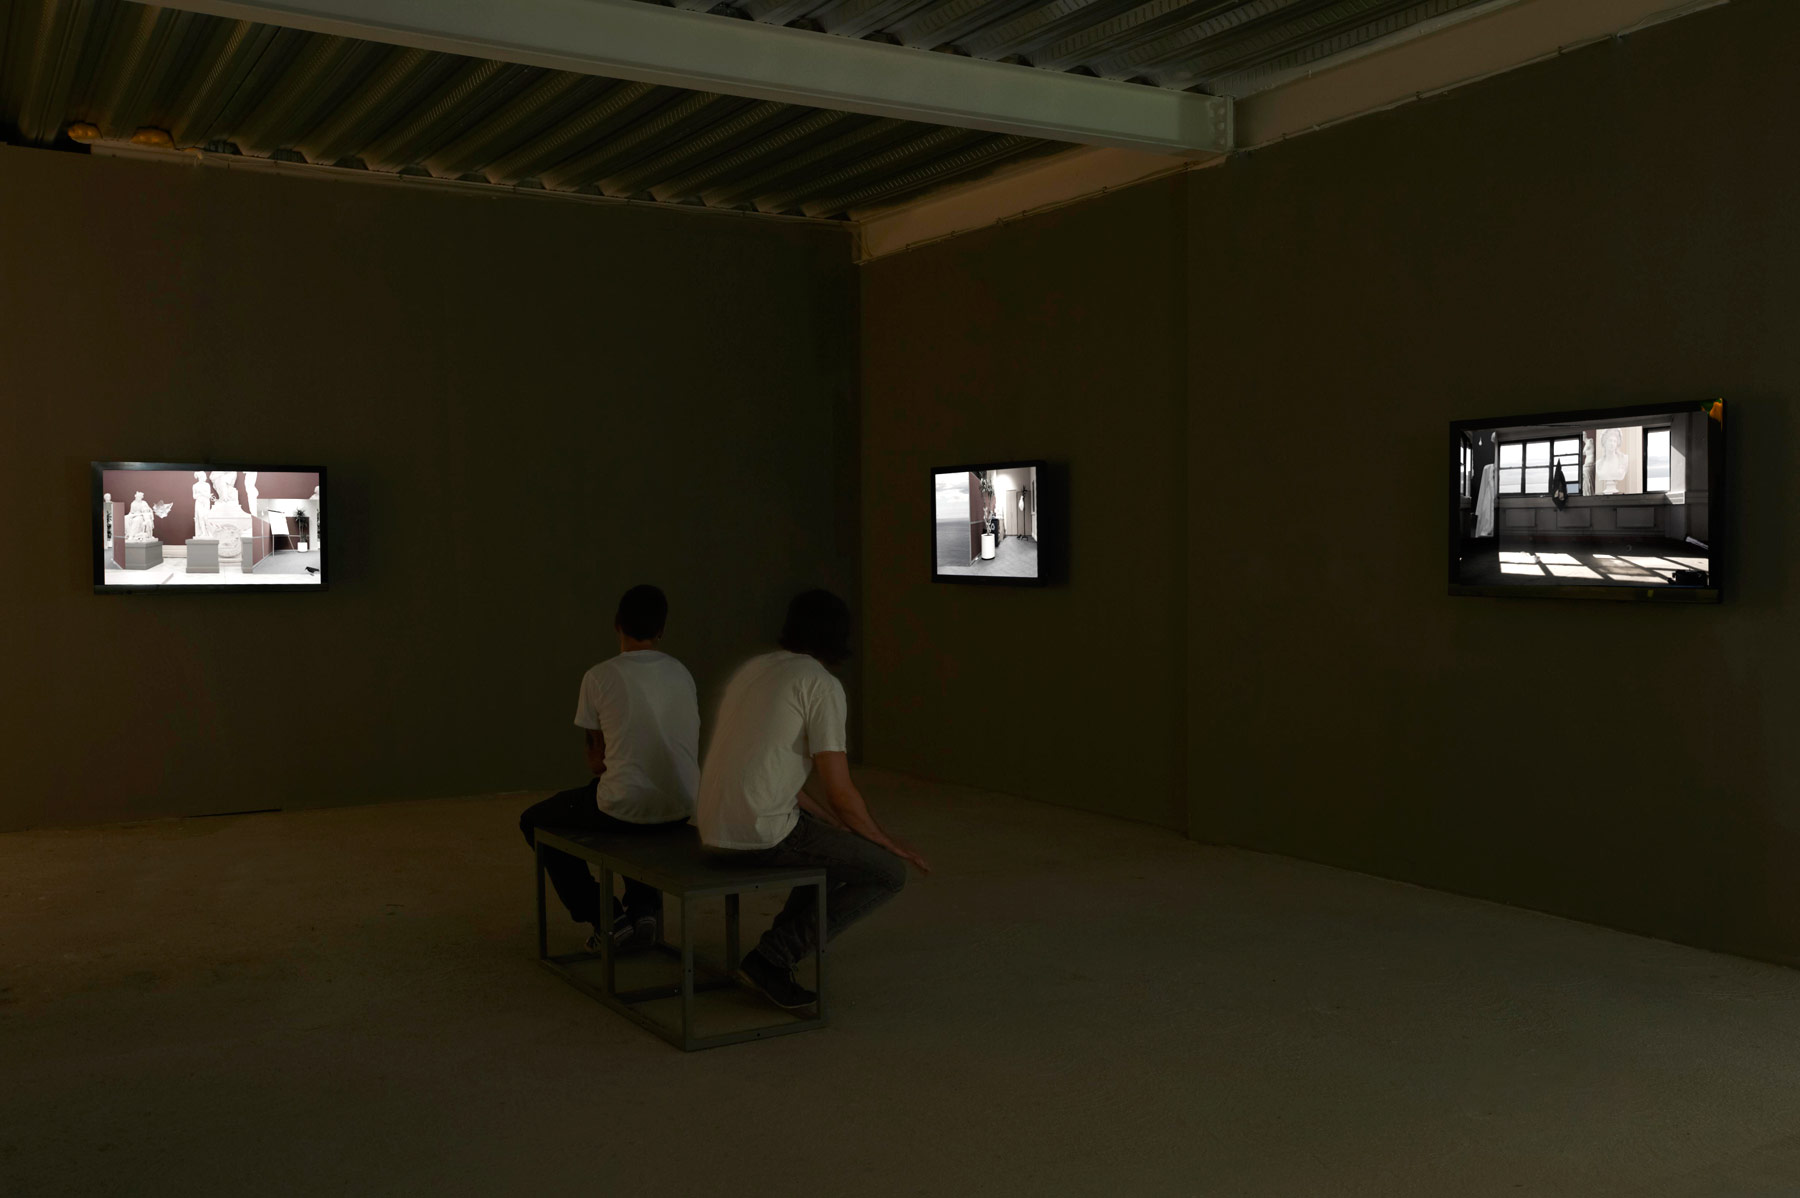 Ailbhe Ní Bhriain 'Great Good Places' four–screen installation, video & cgi composite, colour, sound, looped, sound by Pádraig Murphy, 2011, installation view at eva international 2012 'After the Future' in Limerick, Ireland, curated by Annie Fletcher.